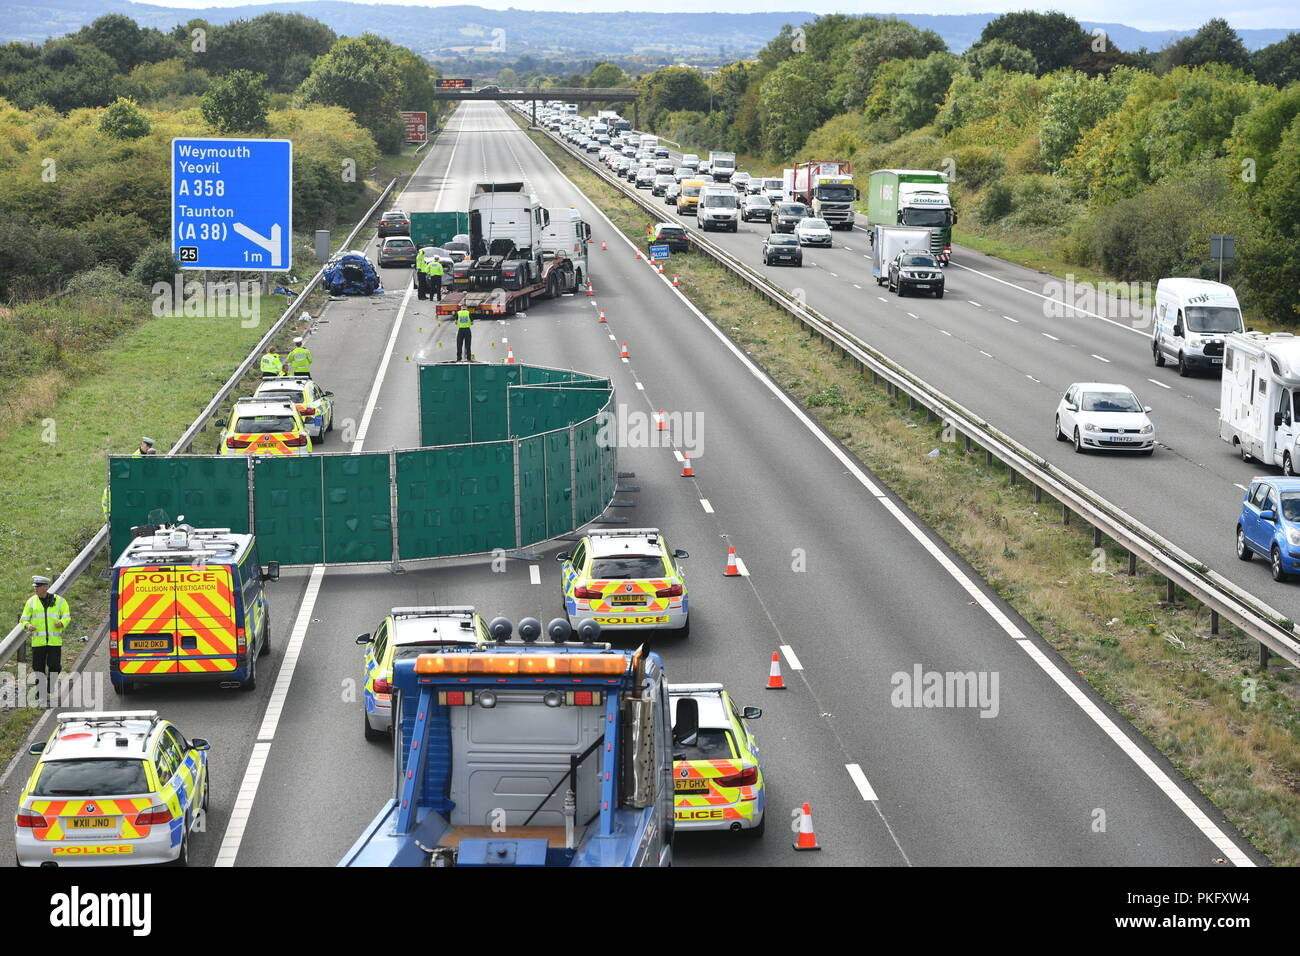 Emergency services at the scene of an accident on the M5